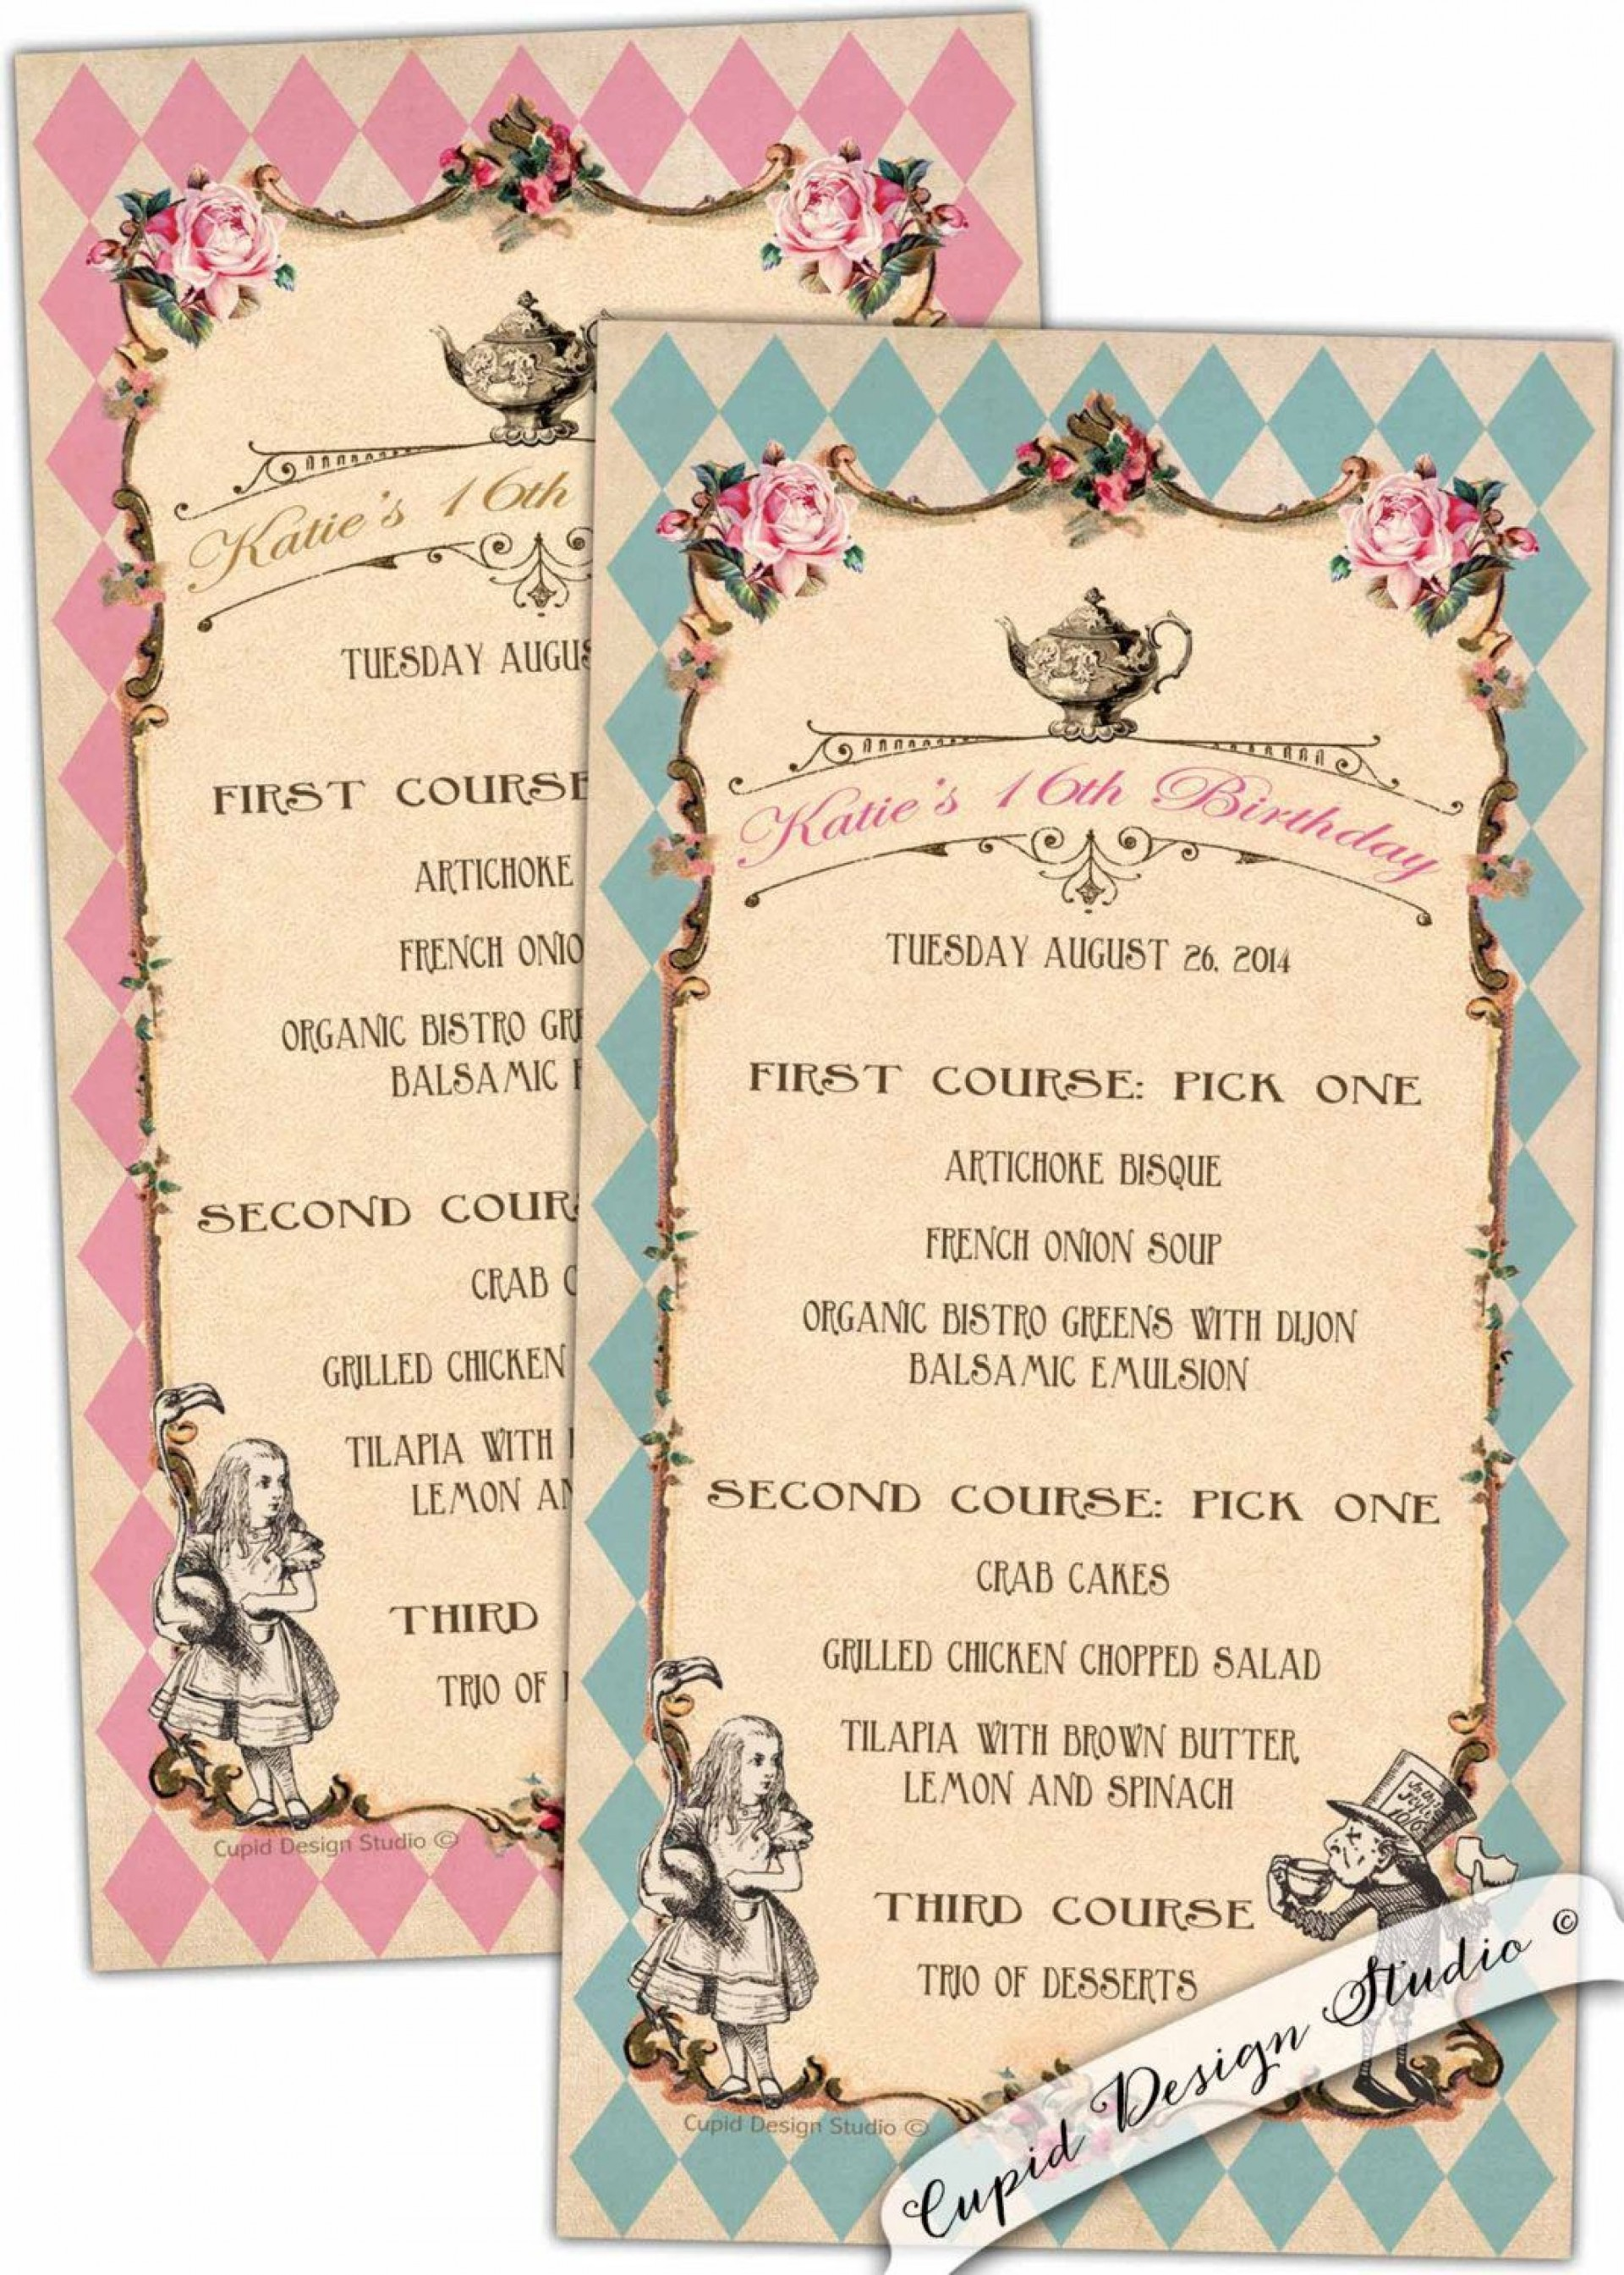 002 Stunning Alice In Wonderland Party Template Example  Templates Invitation Free1920